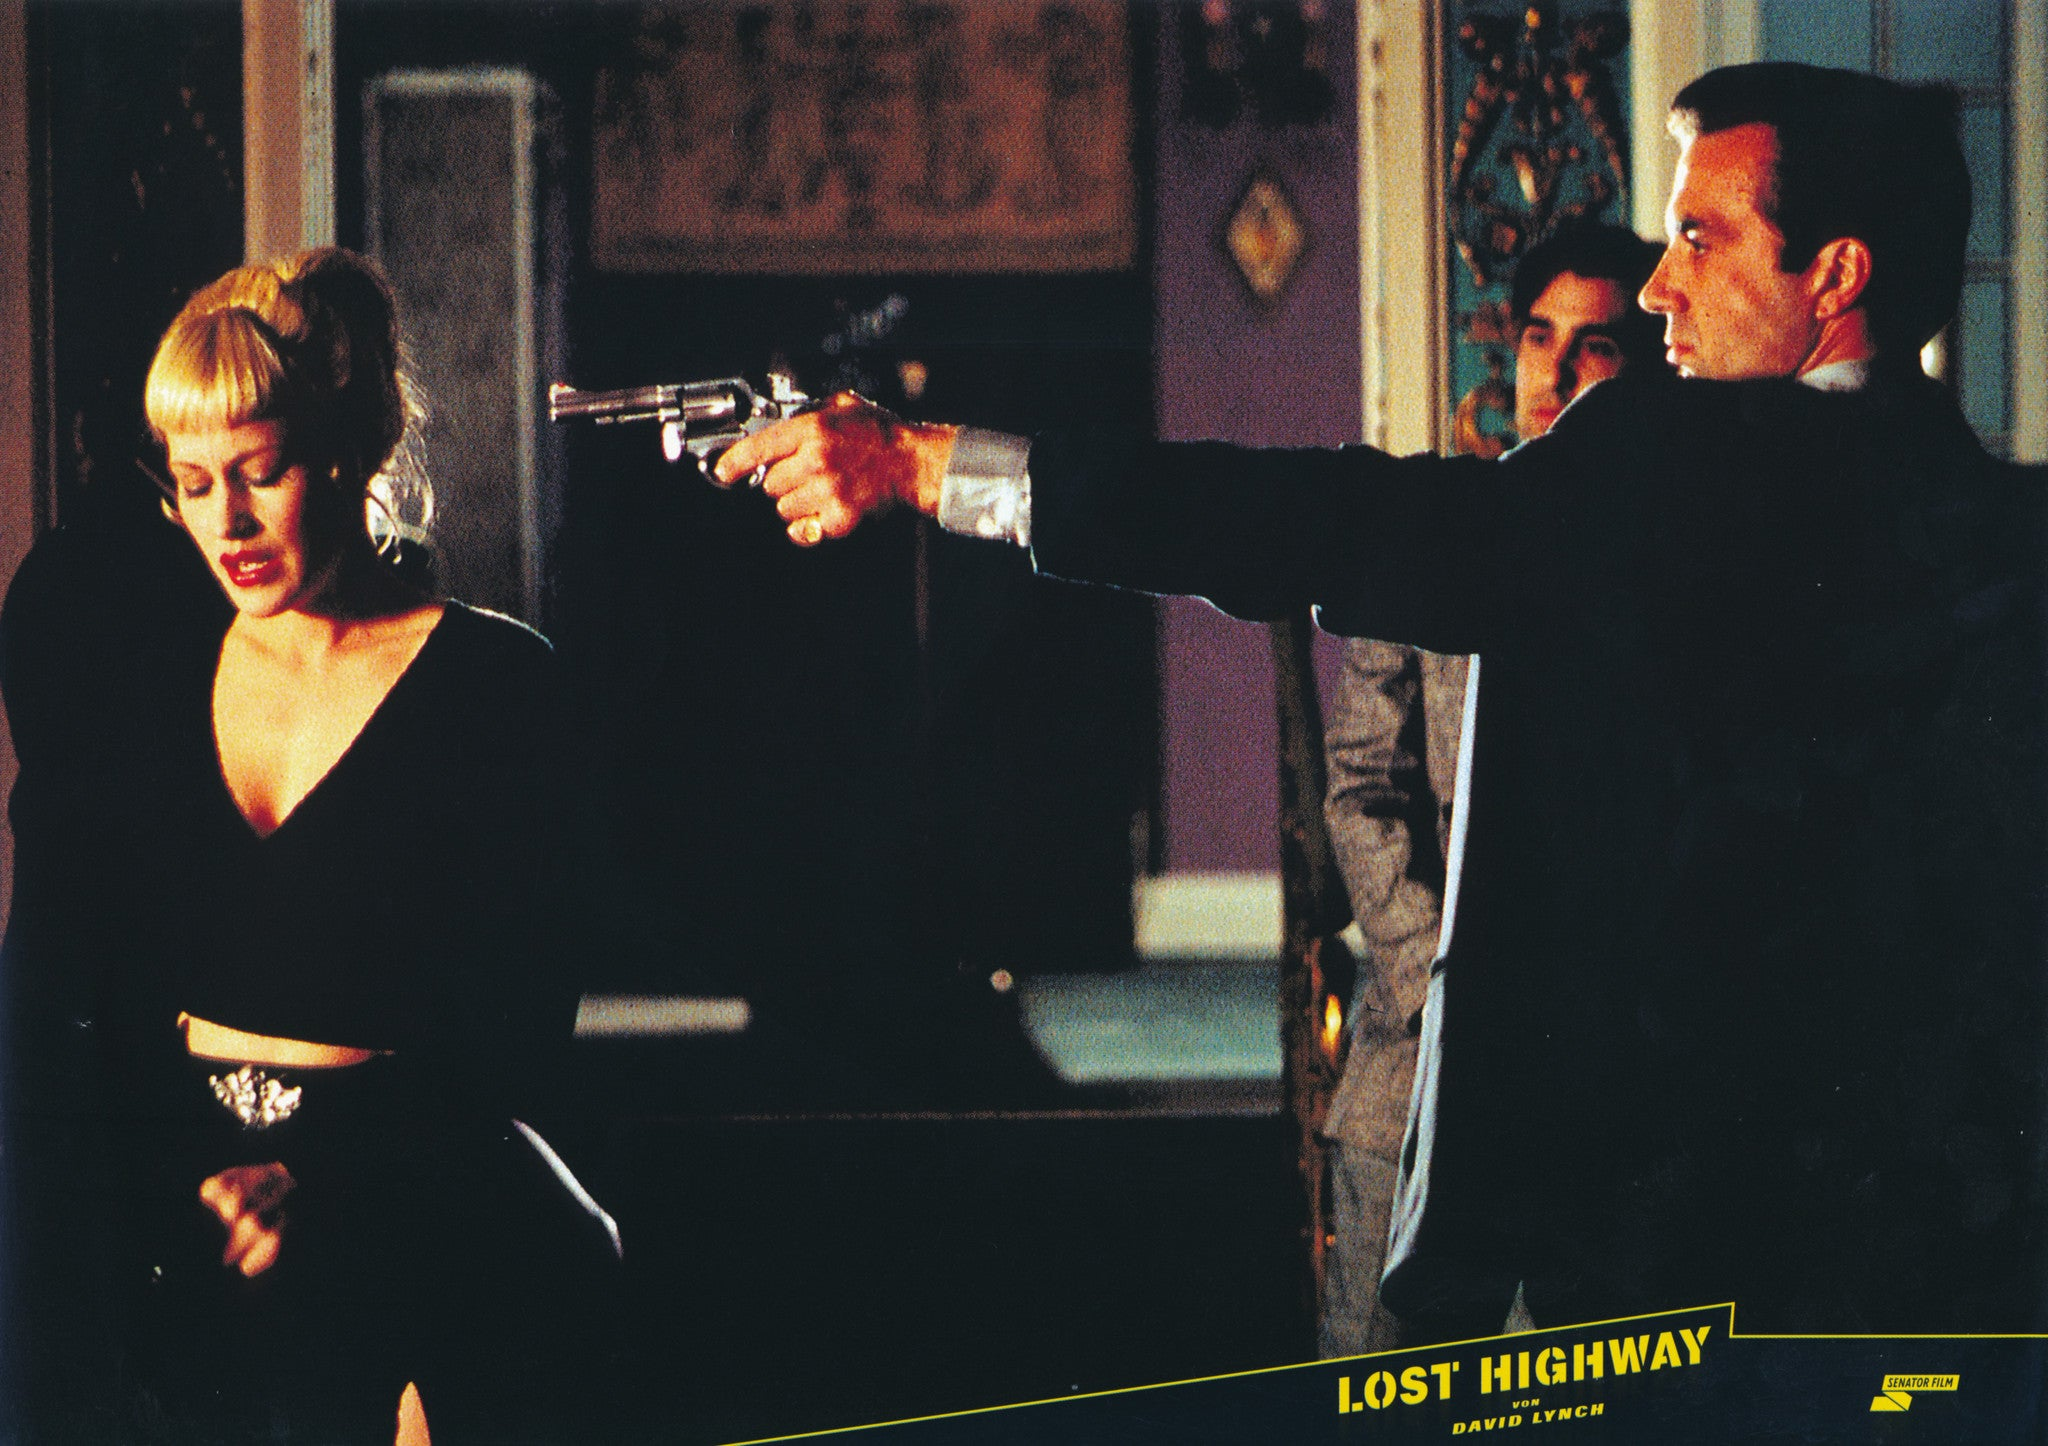 LOST HIGHWAY - German lobby card v8